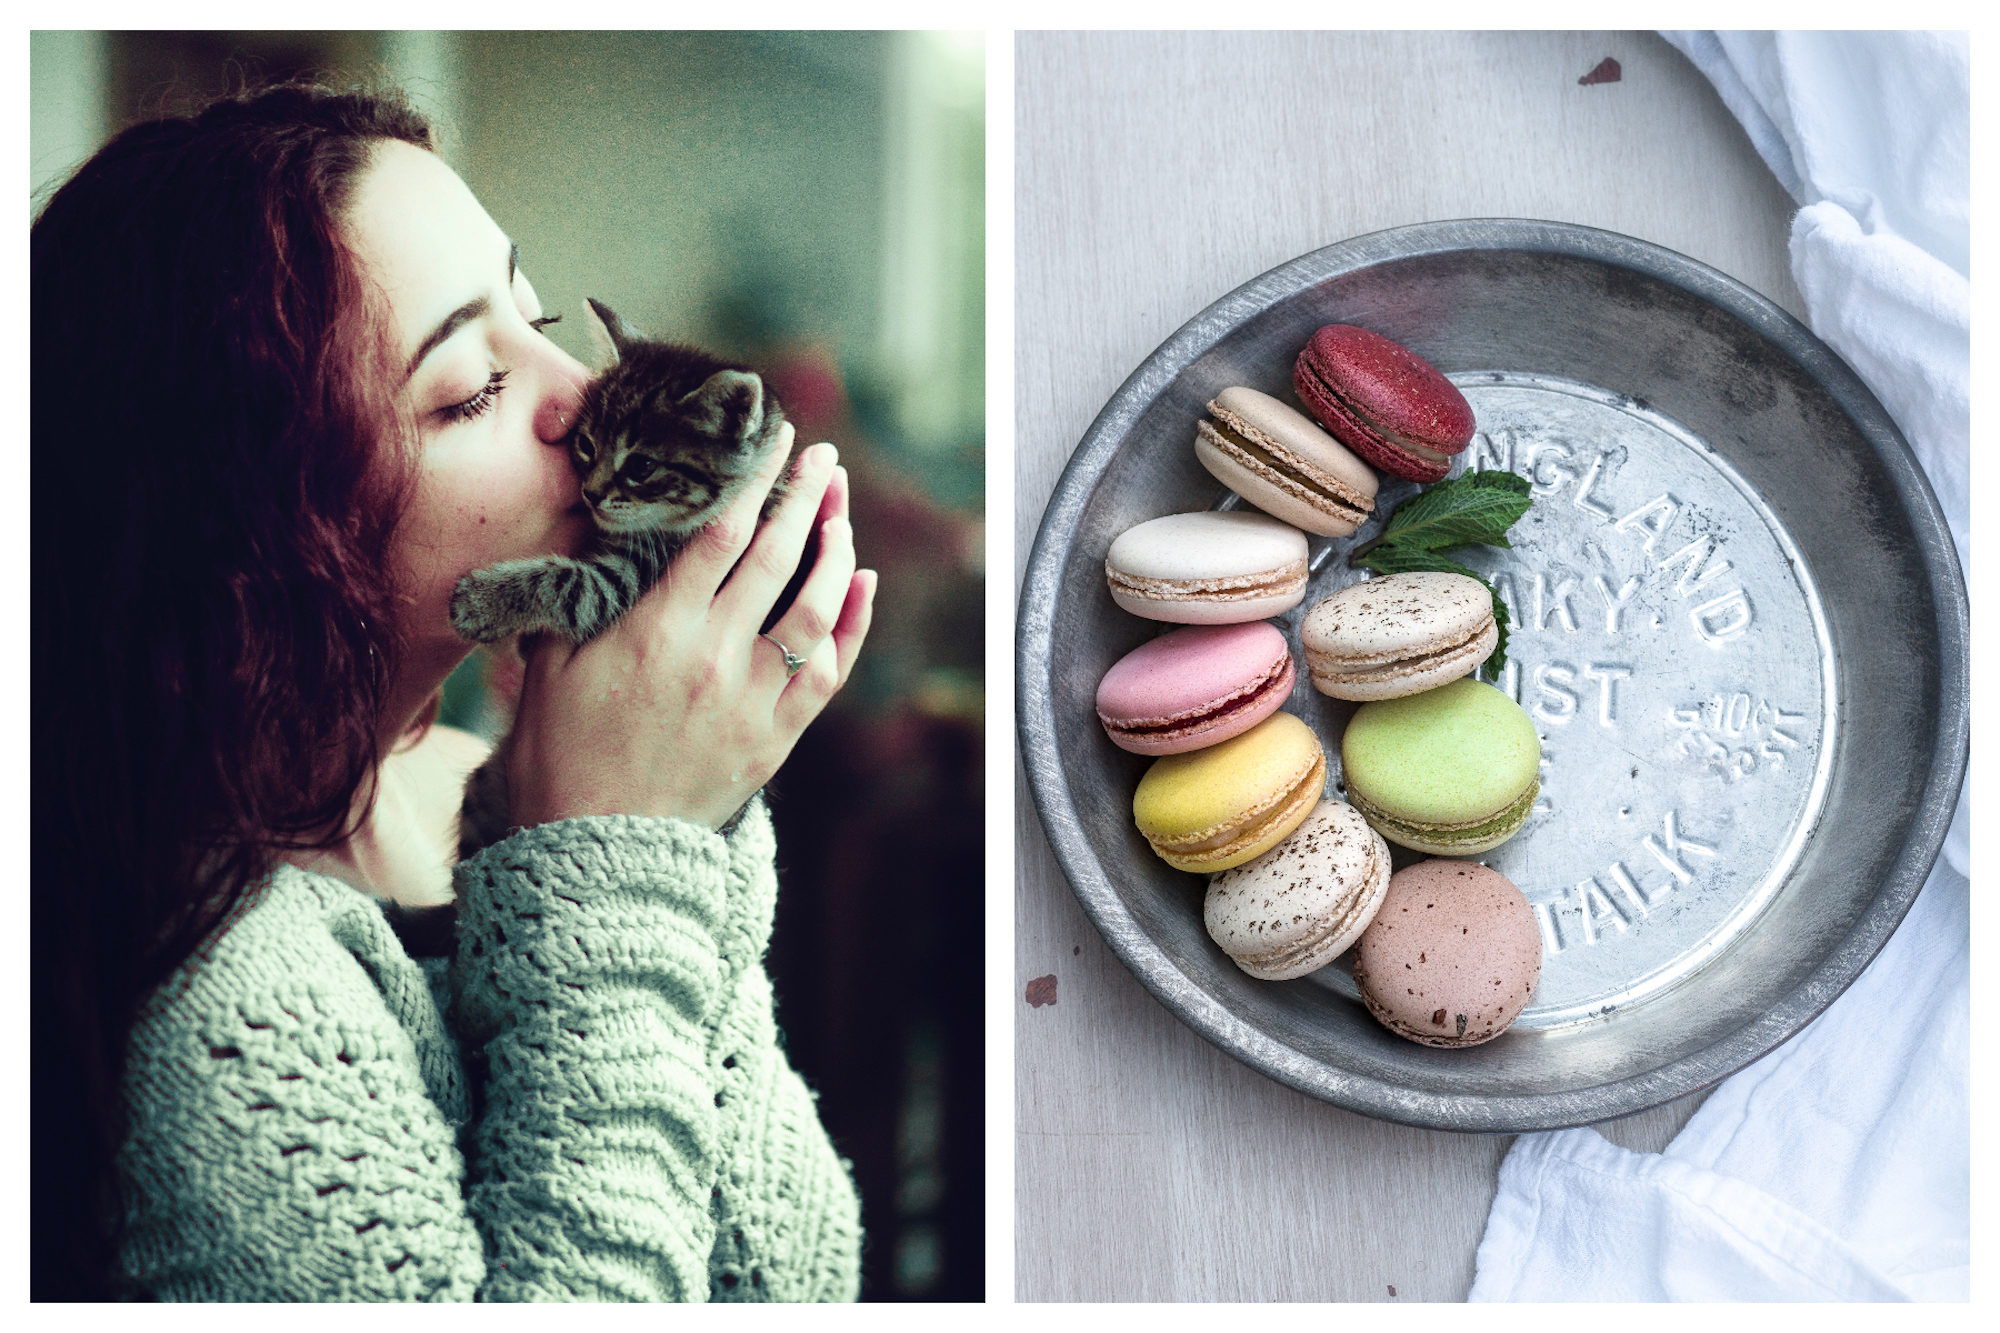 Kissing in France is very important, including kissing your cat (left). Doing the French bise should be as light as air or macarons, if you will (right).